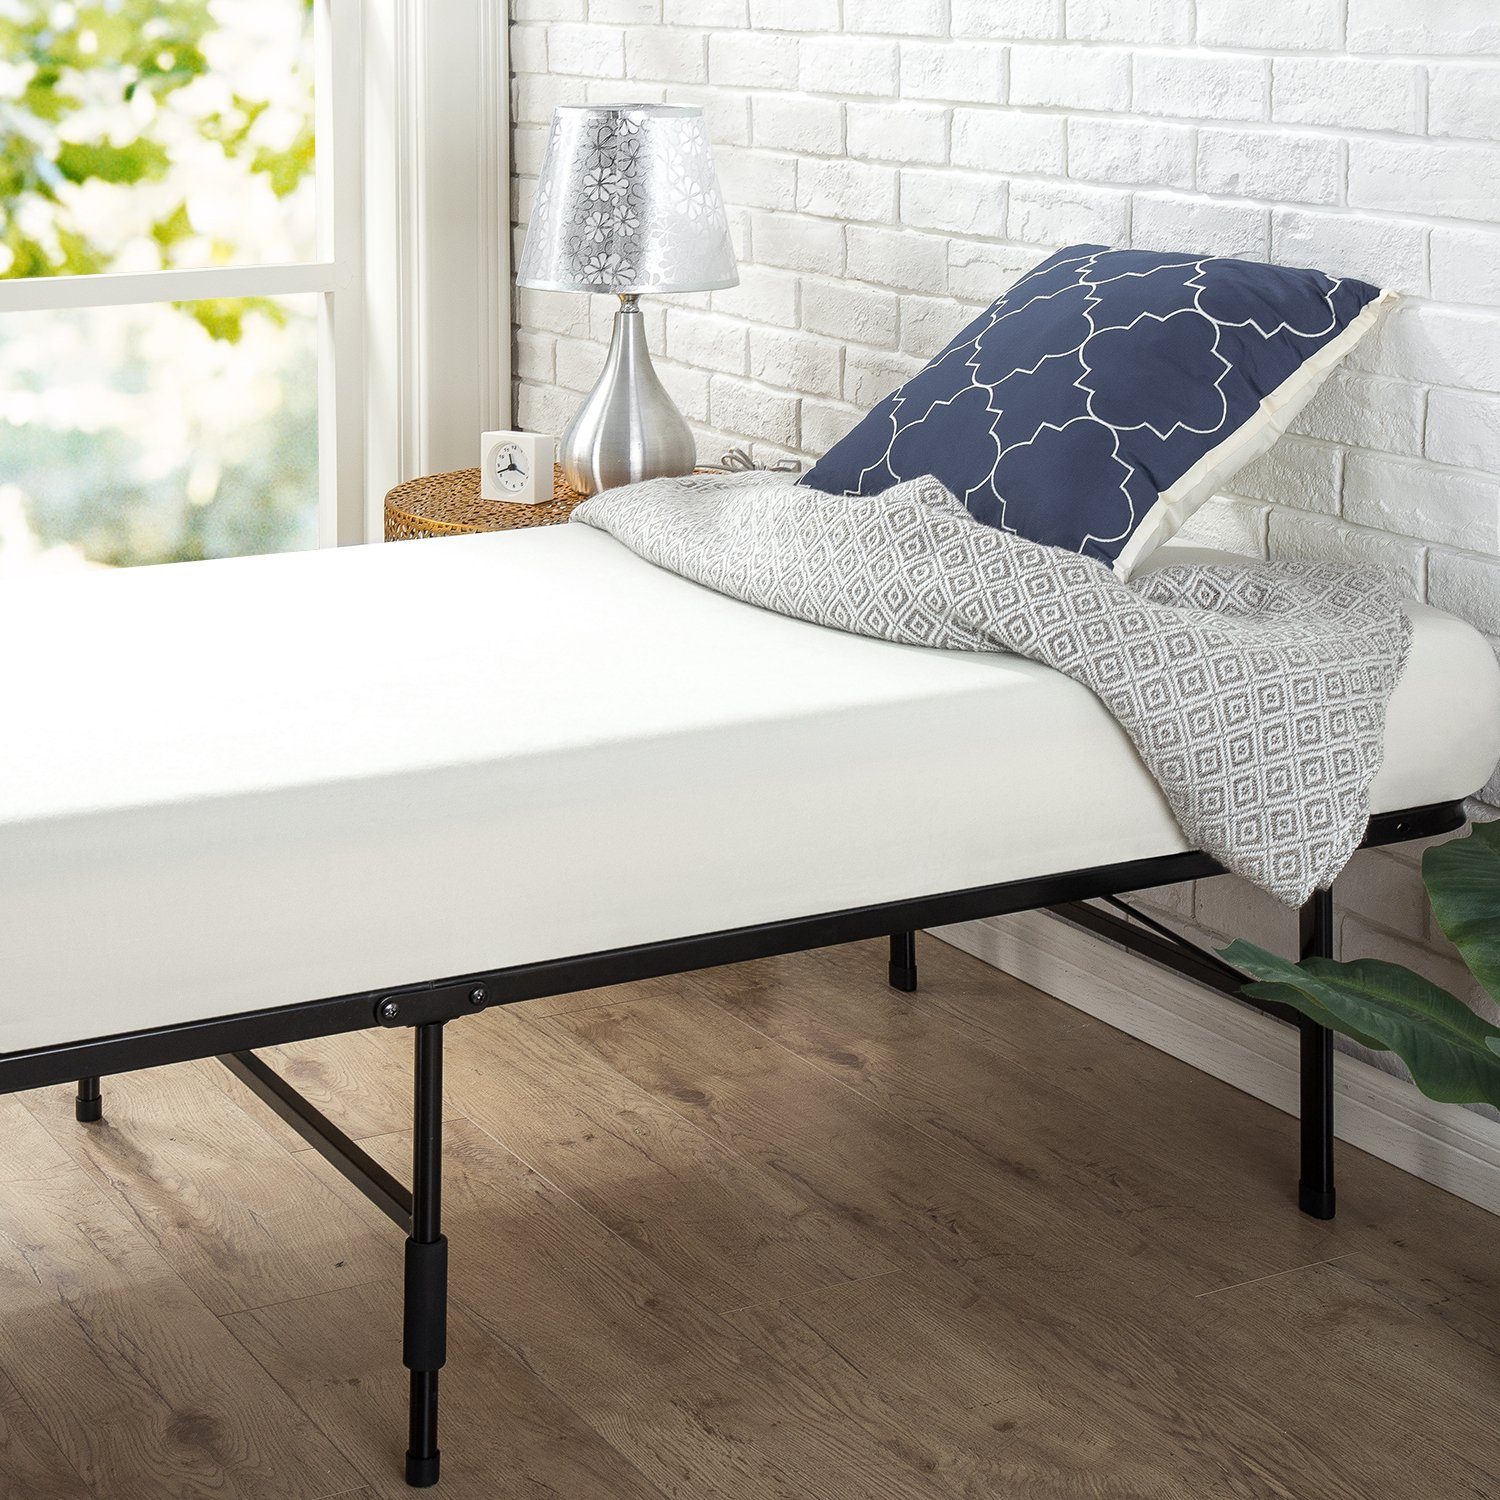 Zinus Shawn 14 Inch SmartBase Mattress Foundation in Narrow Twin / Cot size / 30'' x 75'' / Platform Bed Frame / Box Spring Replacement by Zinus